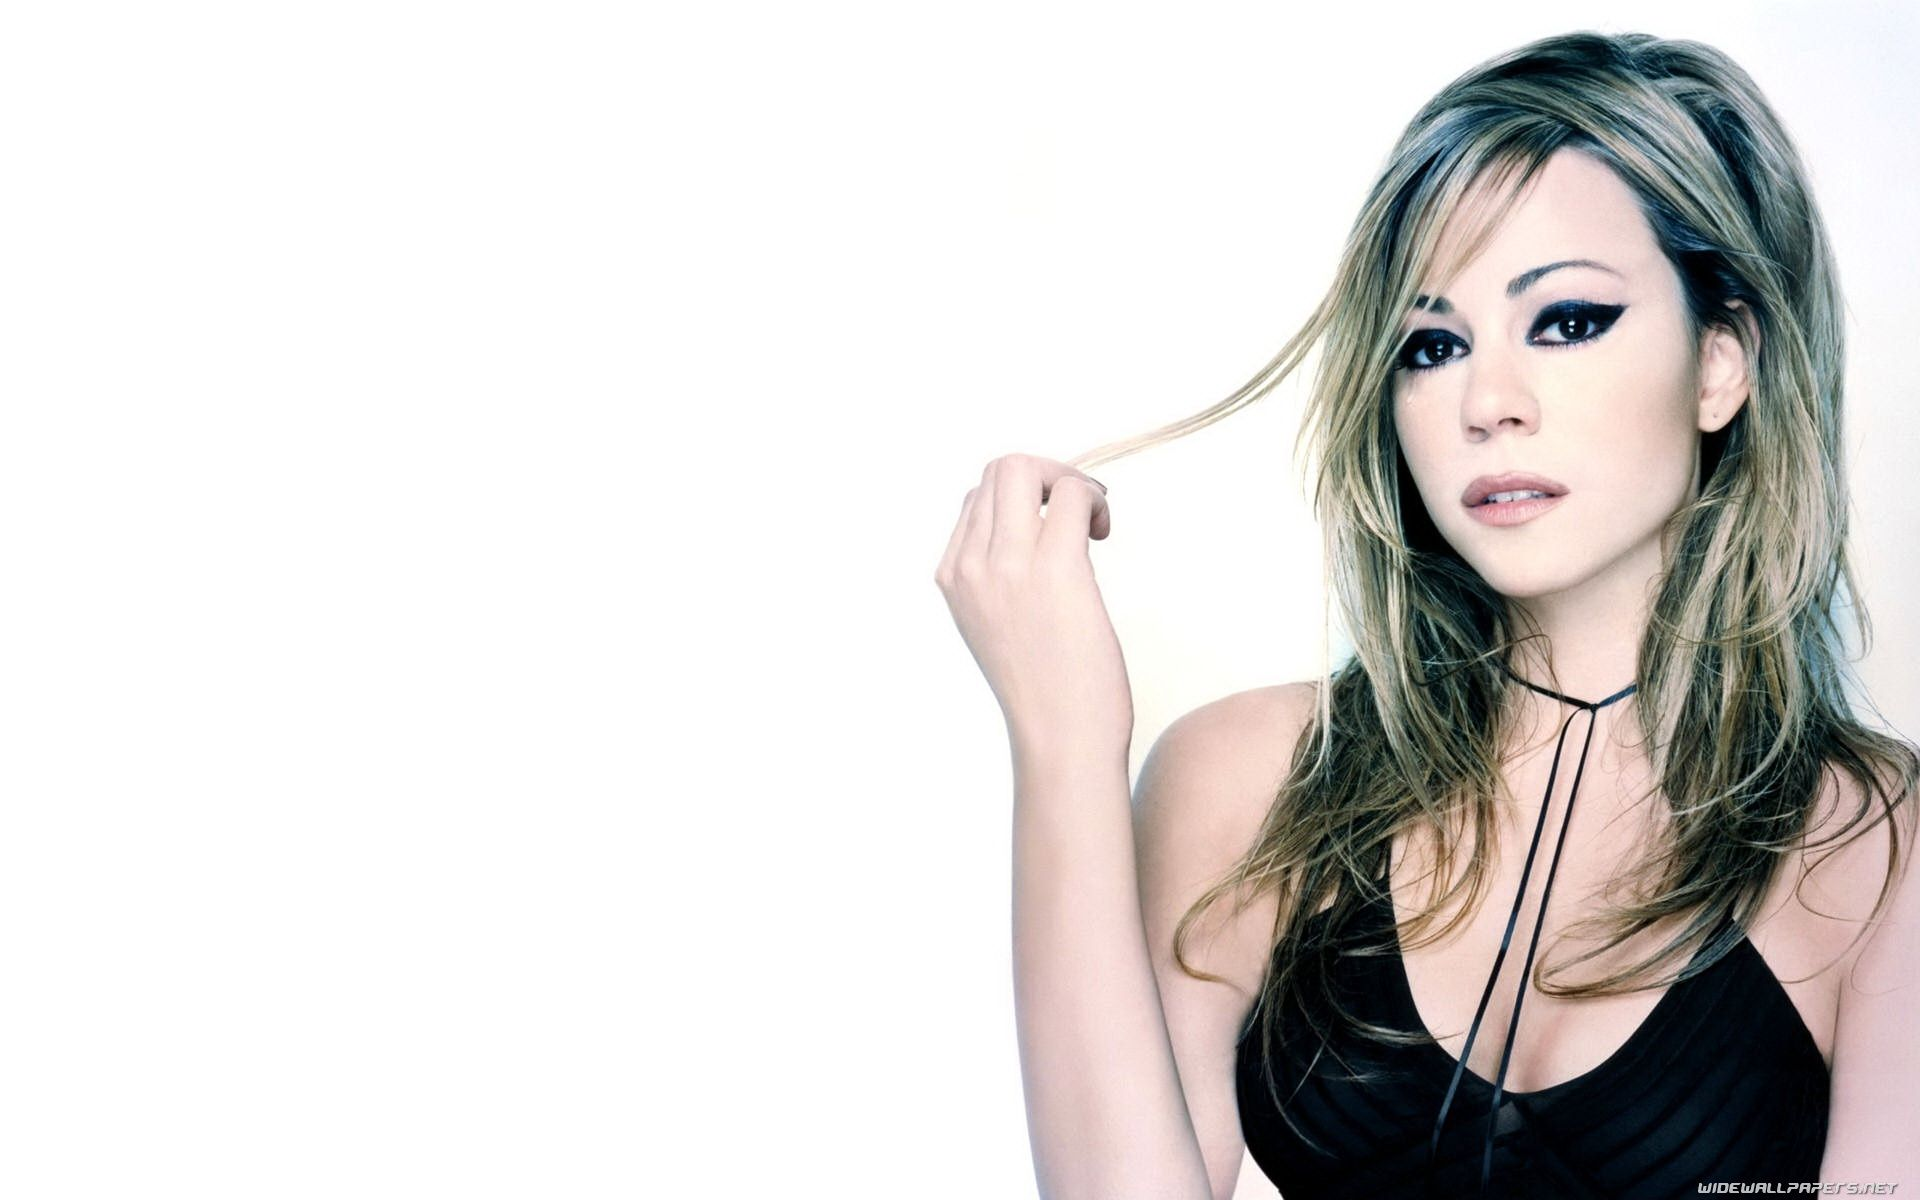 Mariah Carey Hd Desktop Wallpaper Widescreen High Definition Mariah Carey Mariah Carey Music Mariah